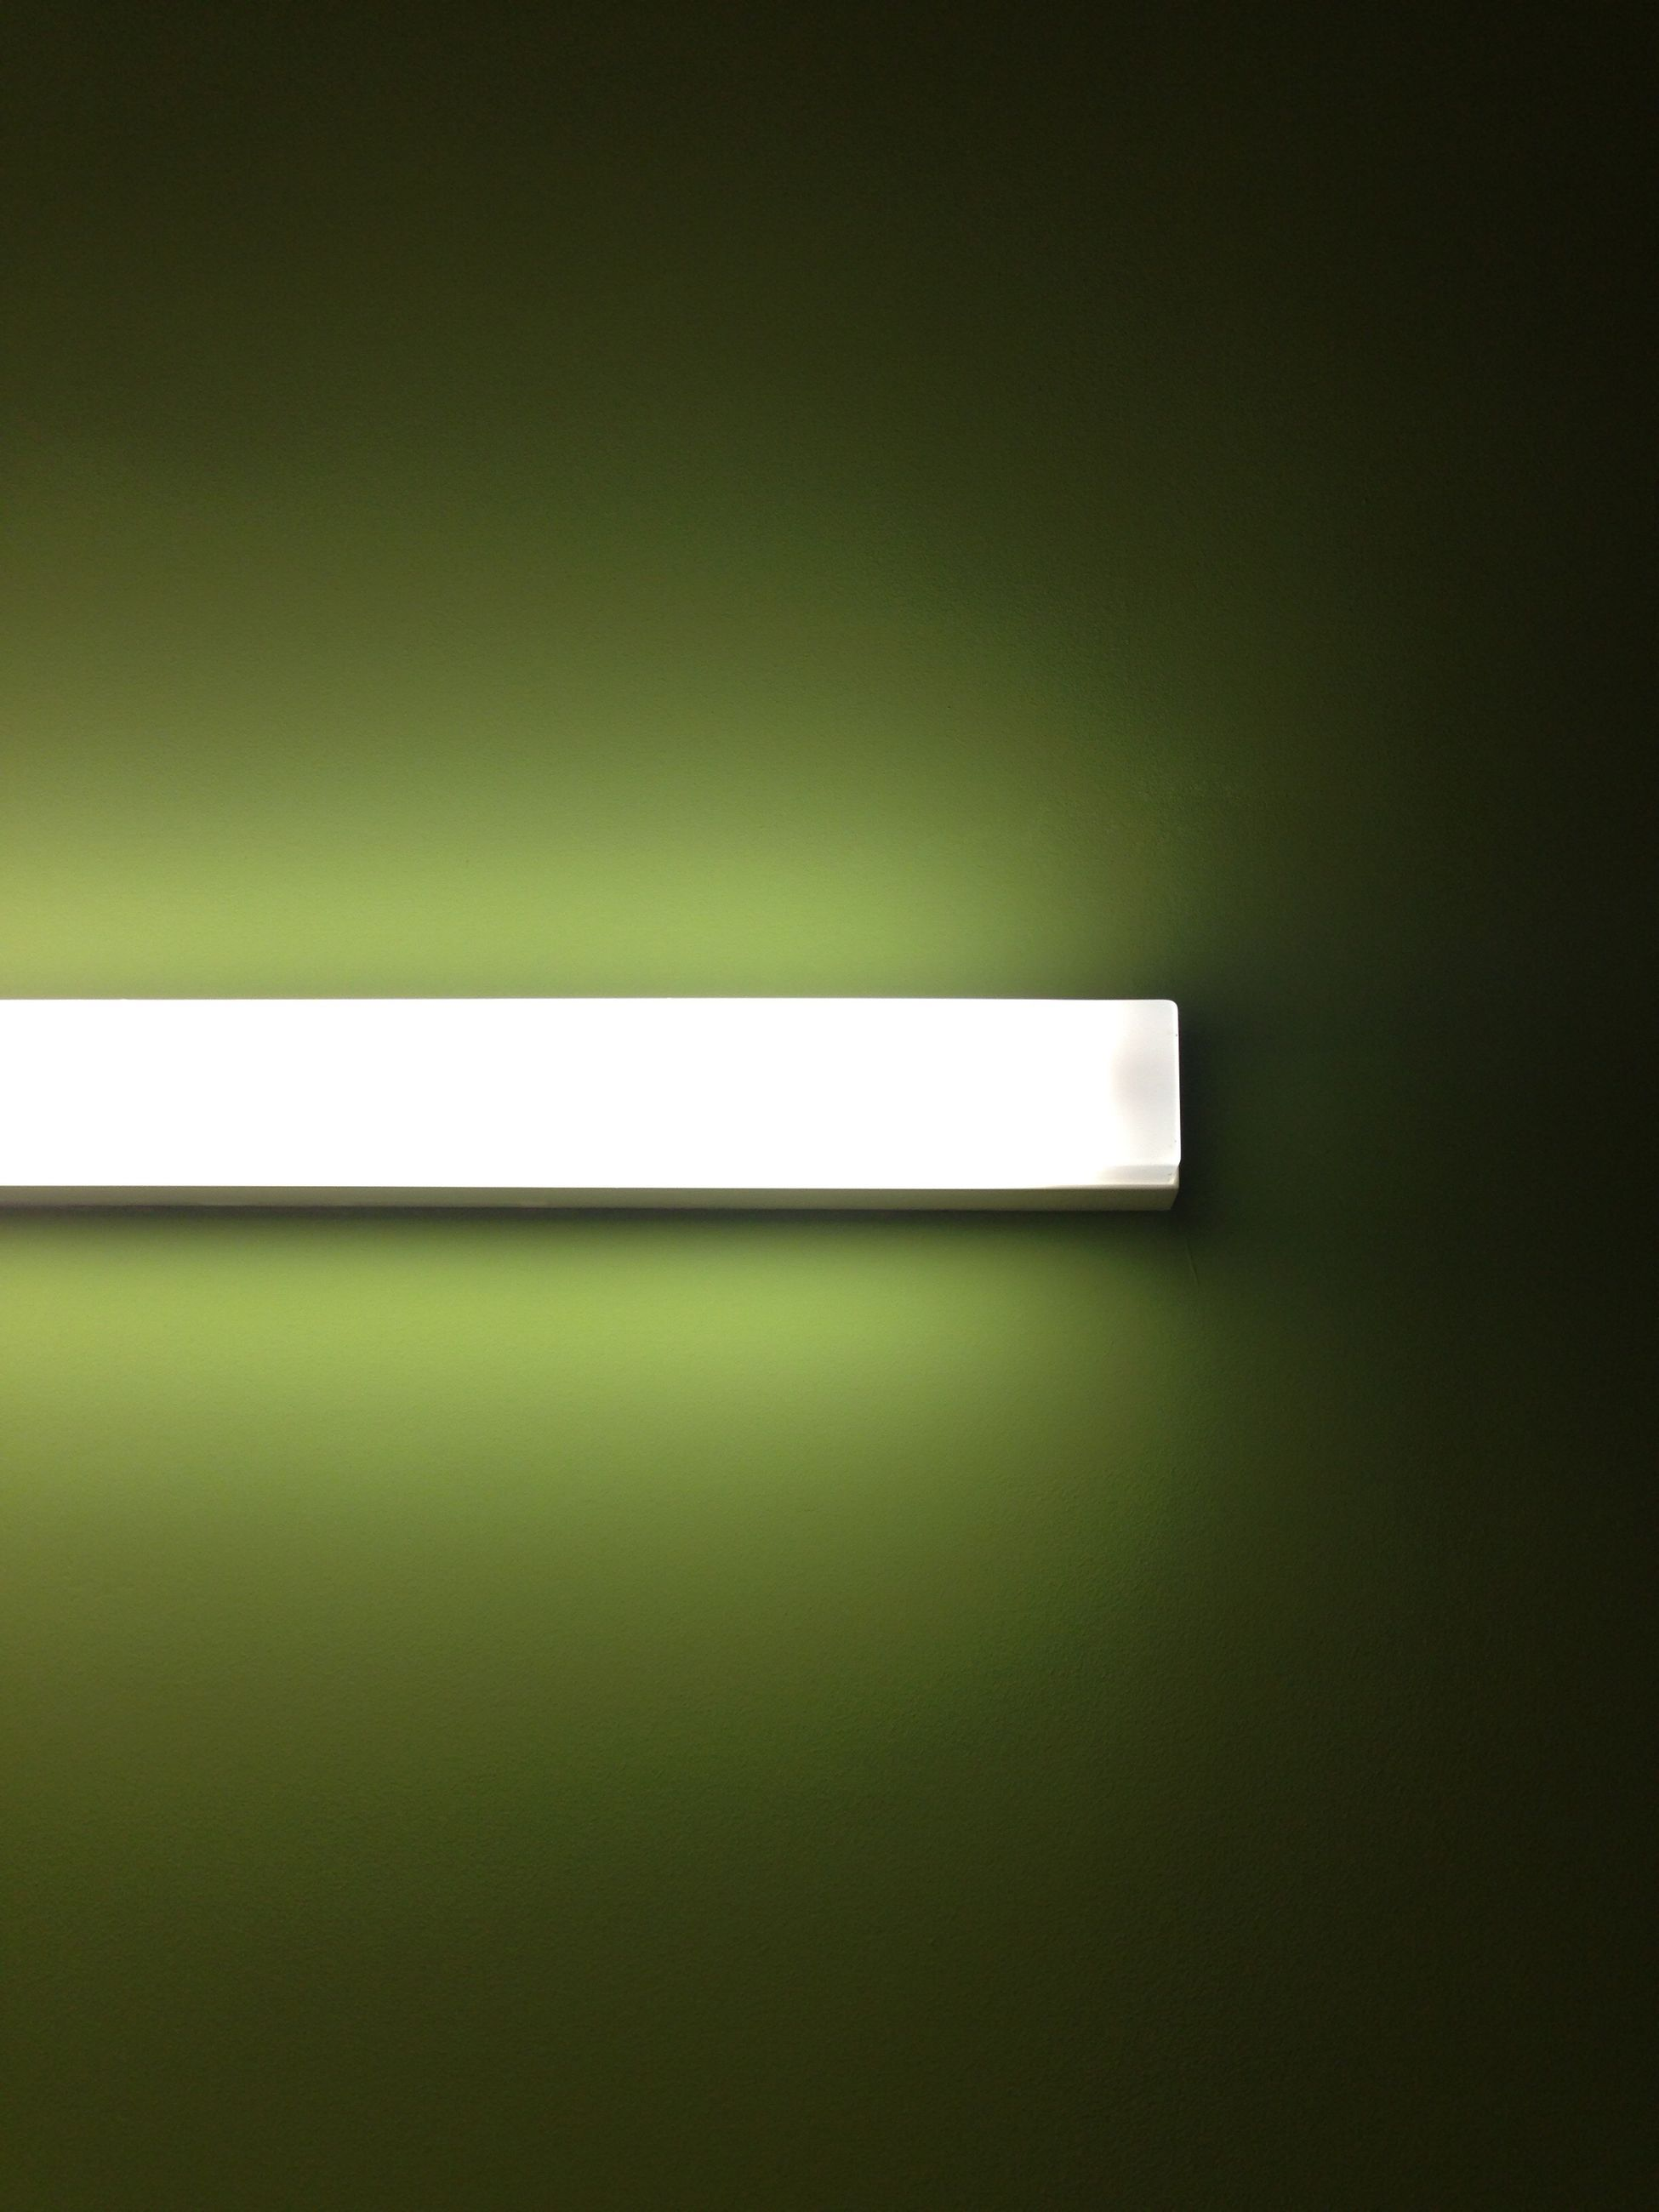 indoors, illuminated, close-up, geometric shape, fluorescent light, order, electric light, green color, full frame, modern, large group of objects, no people